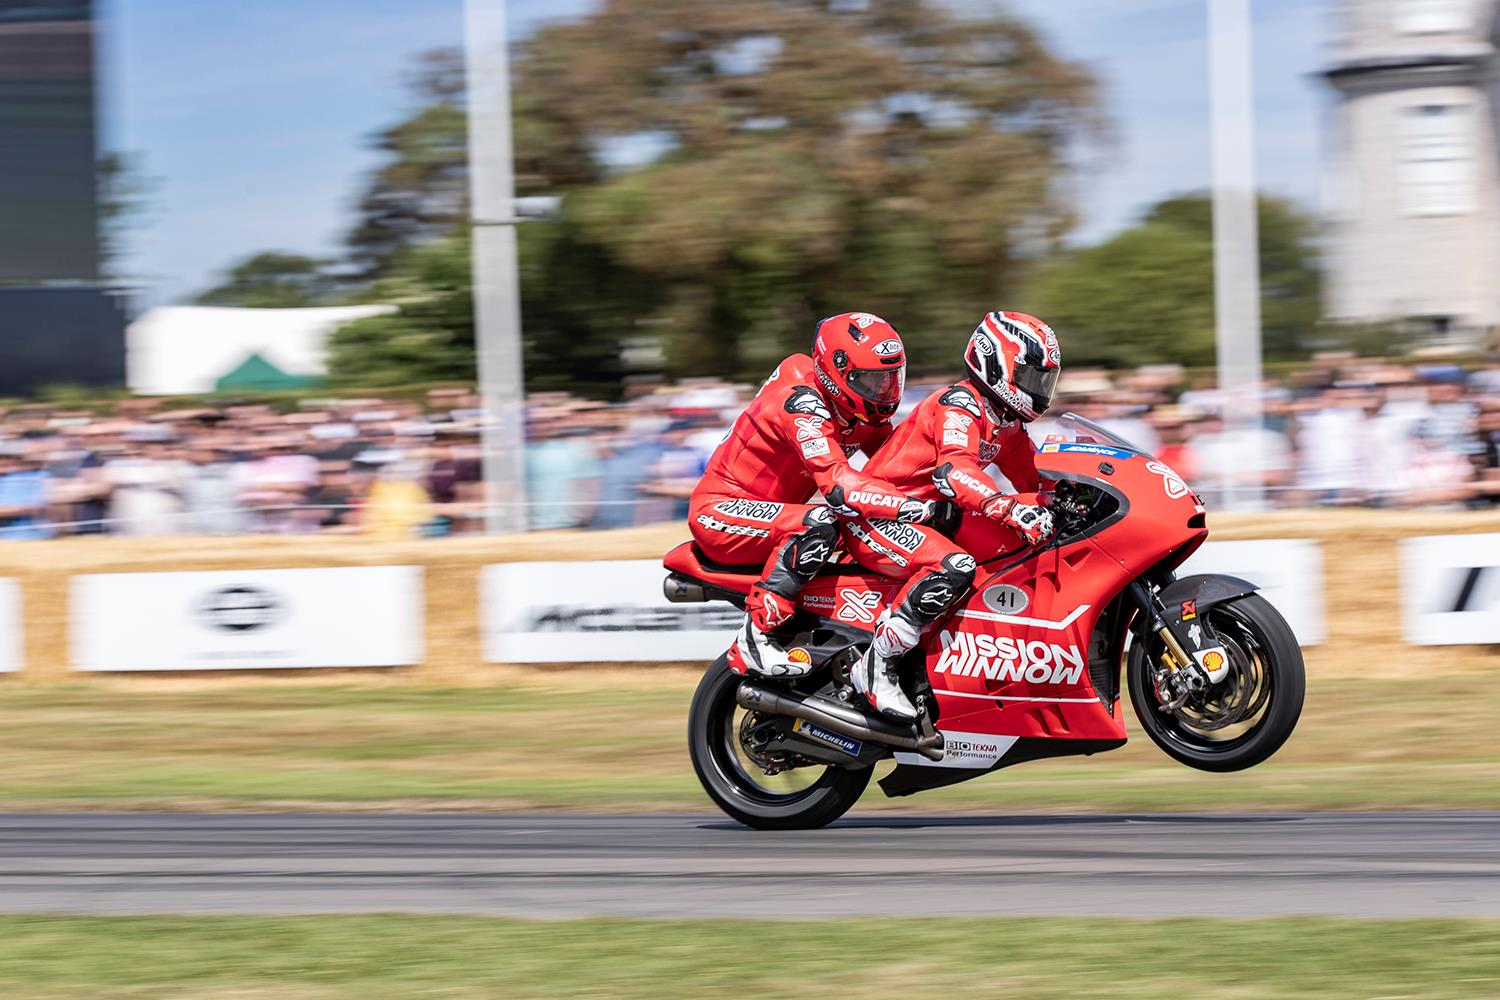 Randy Mamola gives a passenger ride at Goodwood